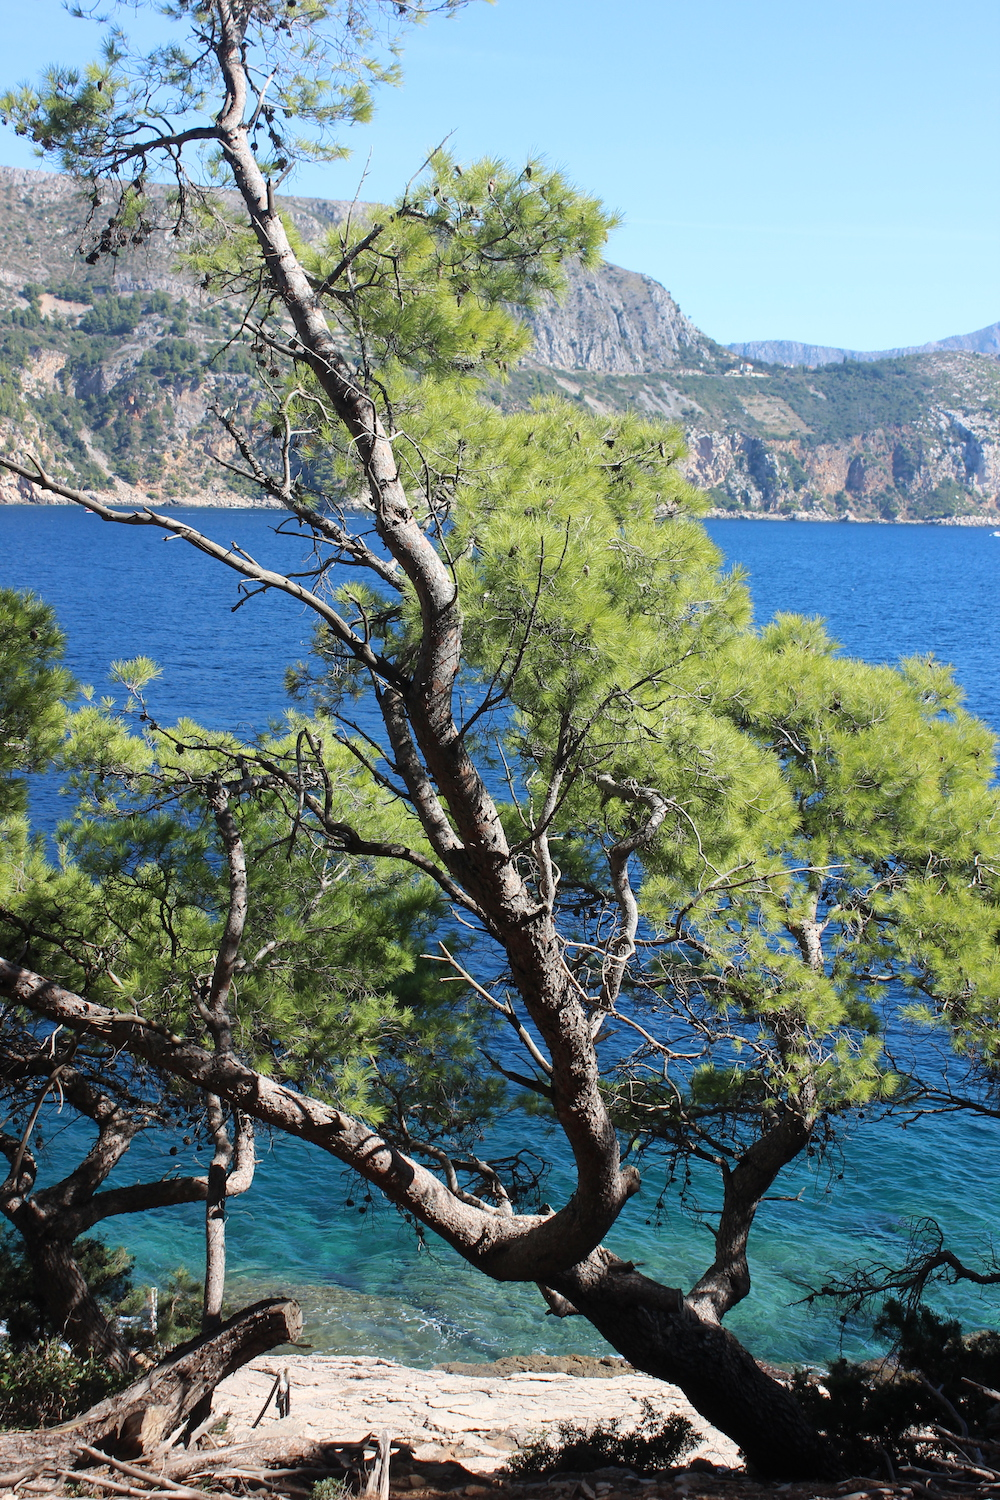 Trees on Lokrum island near Dubrovnik, Croatia | Photo credit: Rose Spaziani